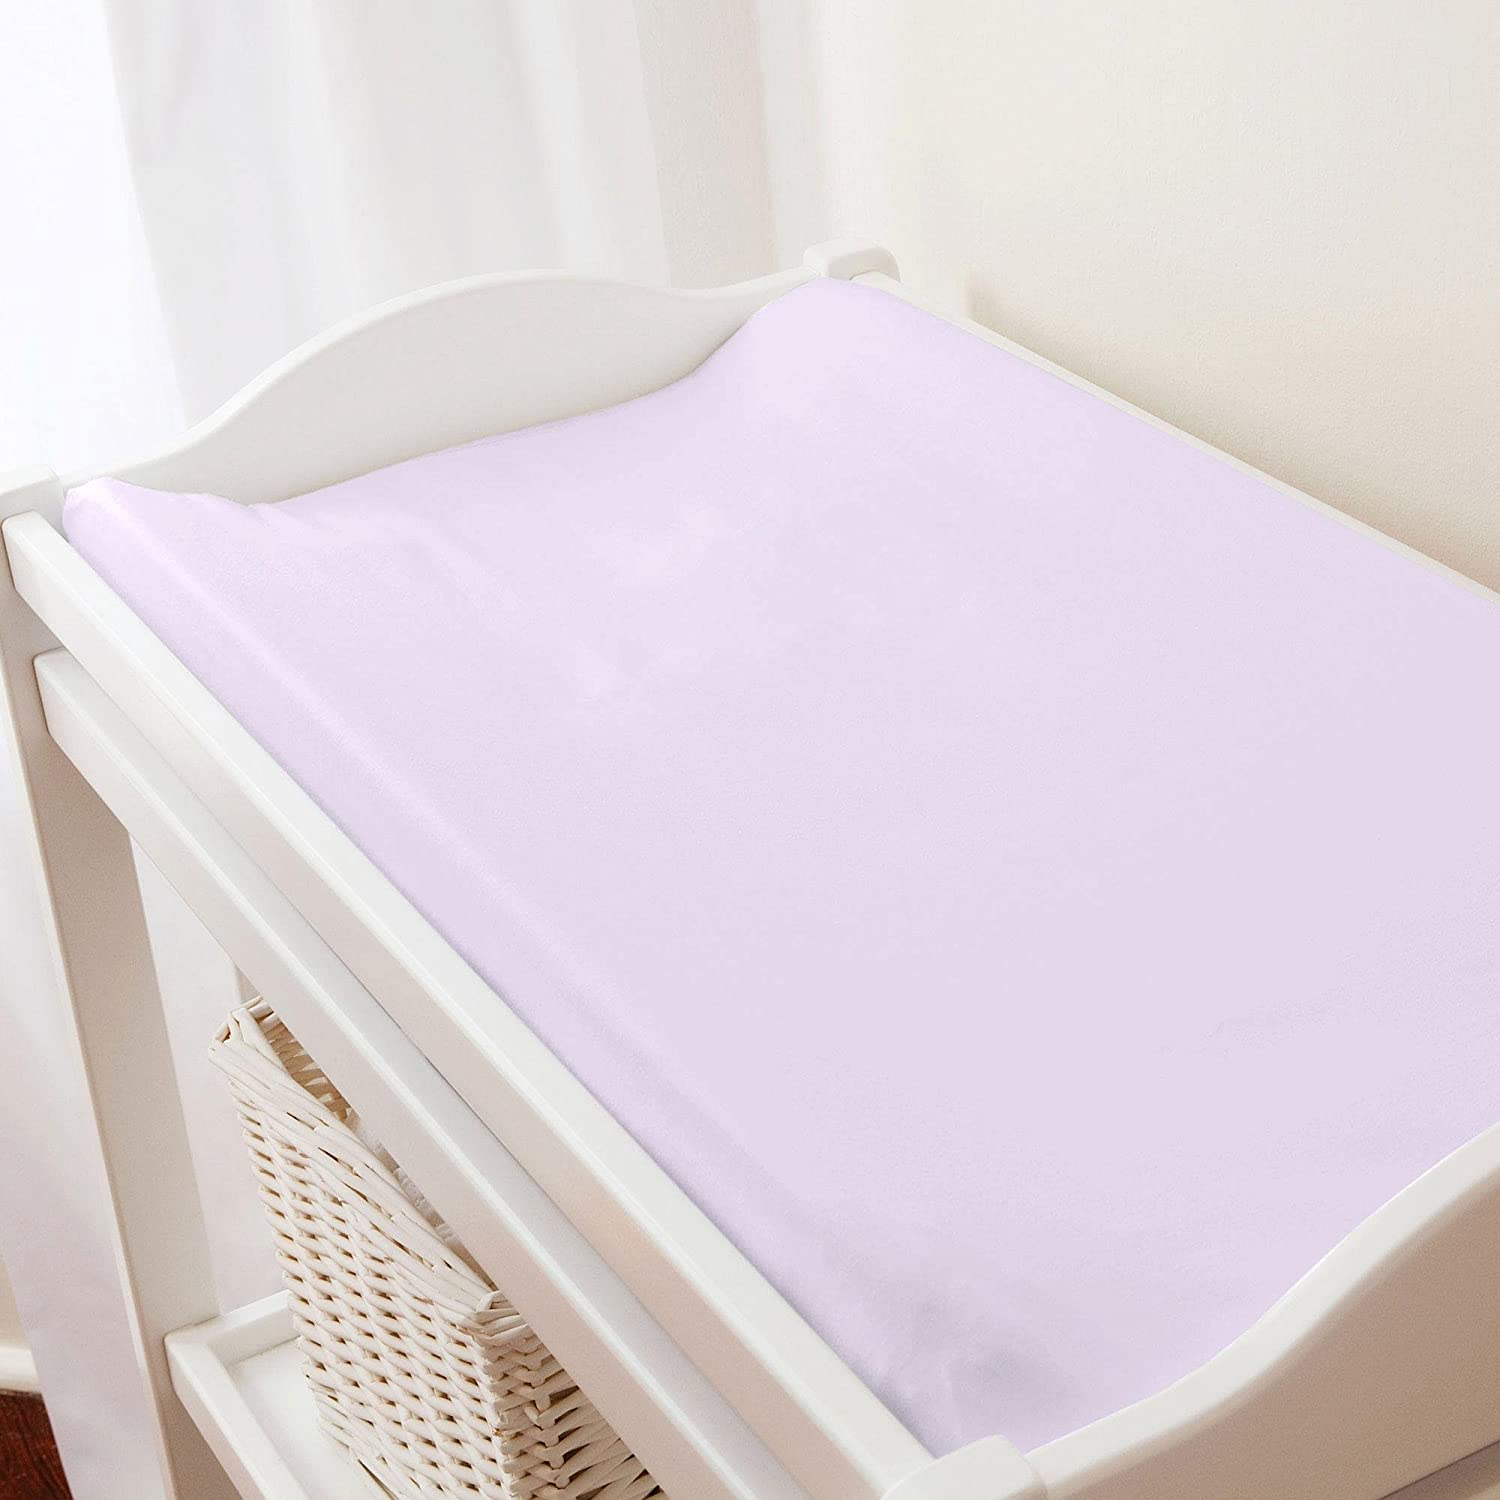 Carousel Designs Solid Lilac Changing Pad Cover by Carousel Designs   B00L890O5S